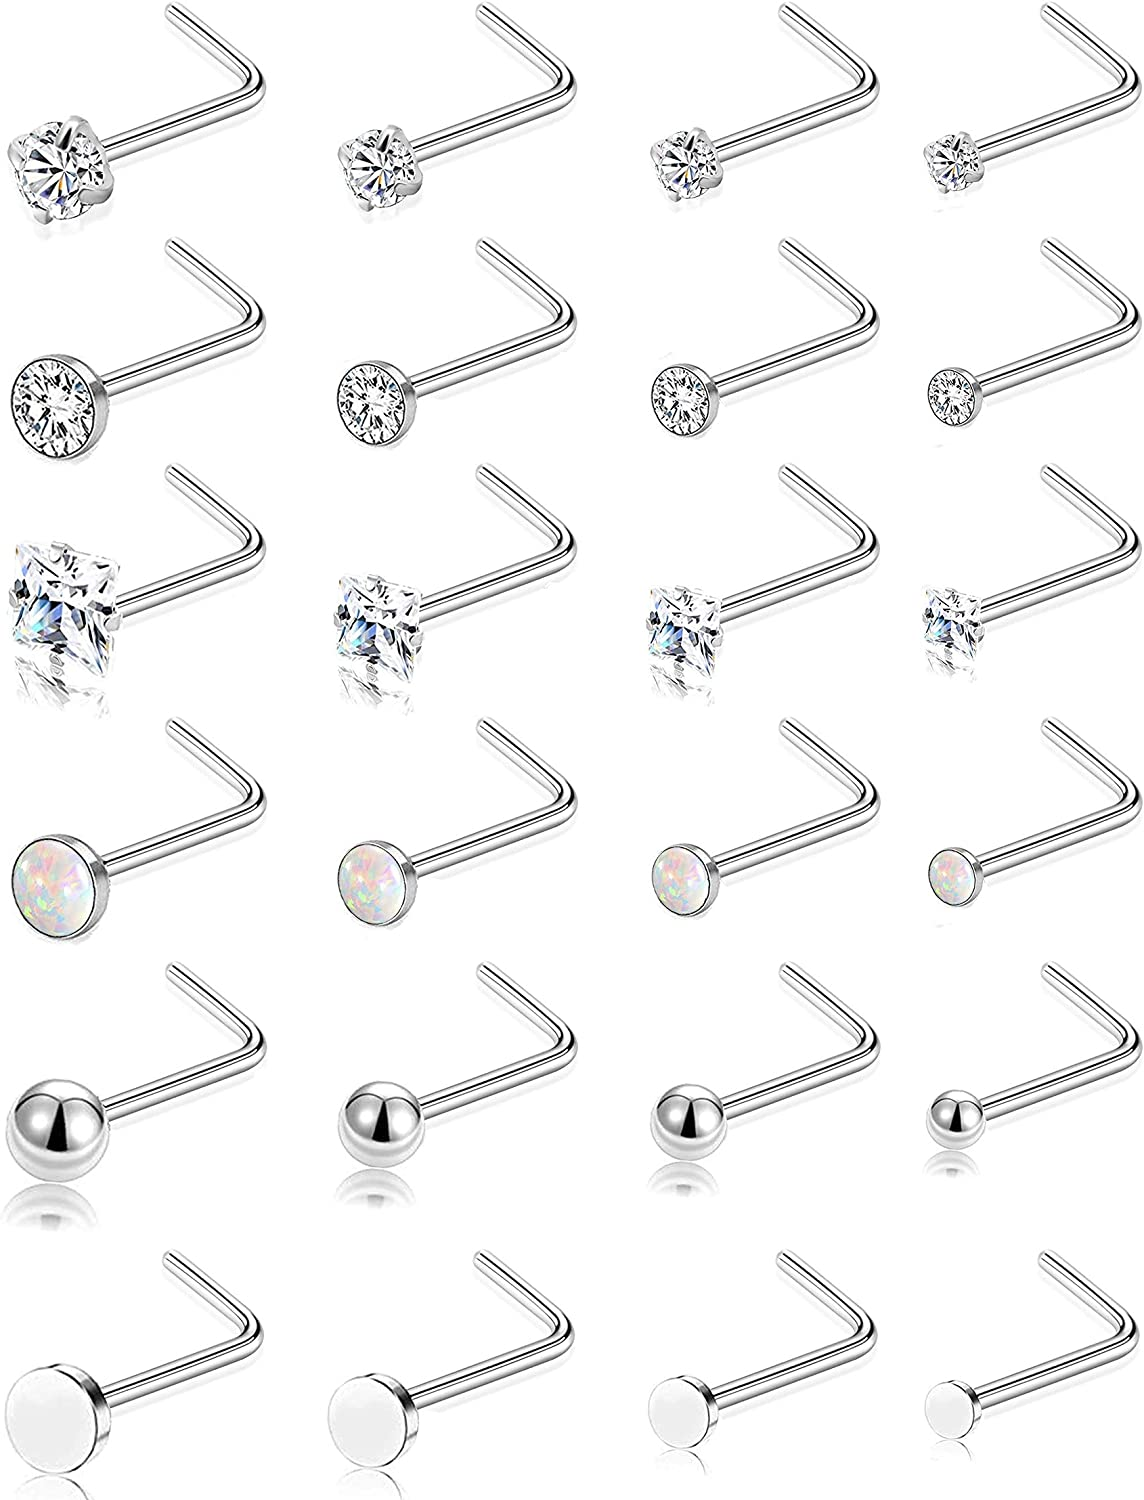 Tornito 20G 24Pcs Stainless Steel Bone L-Shaped Screw Nose Studs Flat Ball CZ Opal Nose Body Piercing Jewelry for Men Women 1.5-2-2.5-3MM